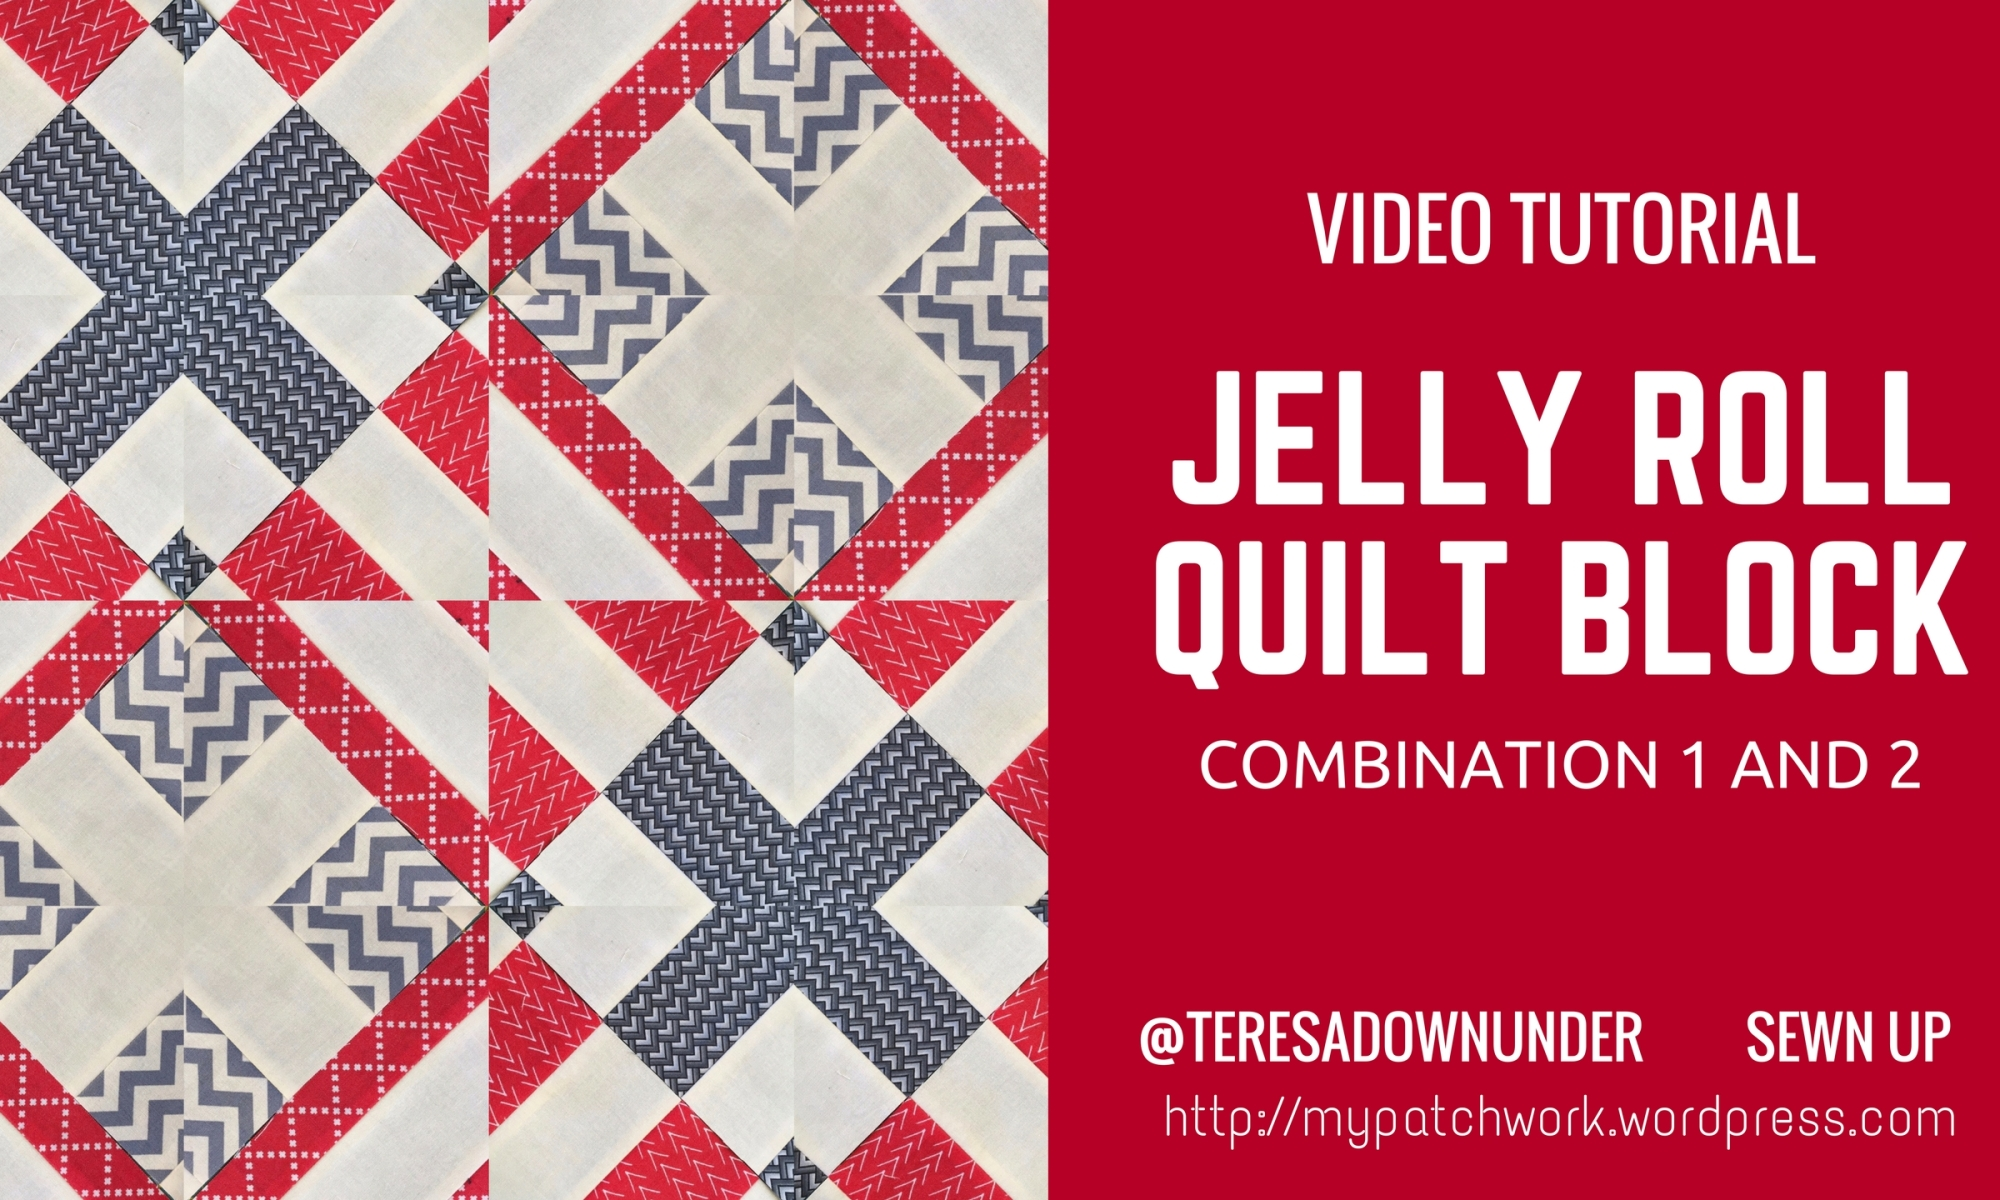 Video tutorial: jelly roll block - combination 1 and 2